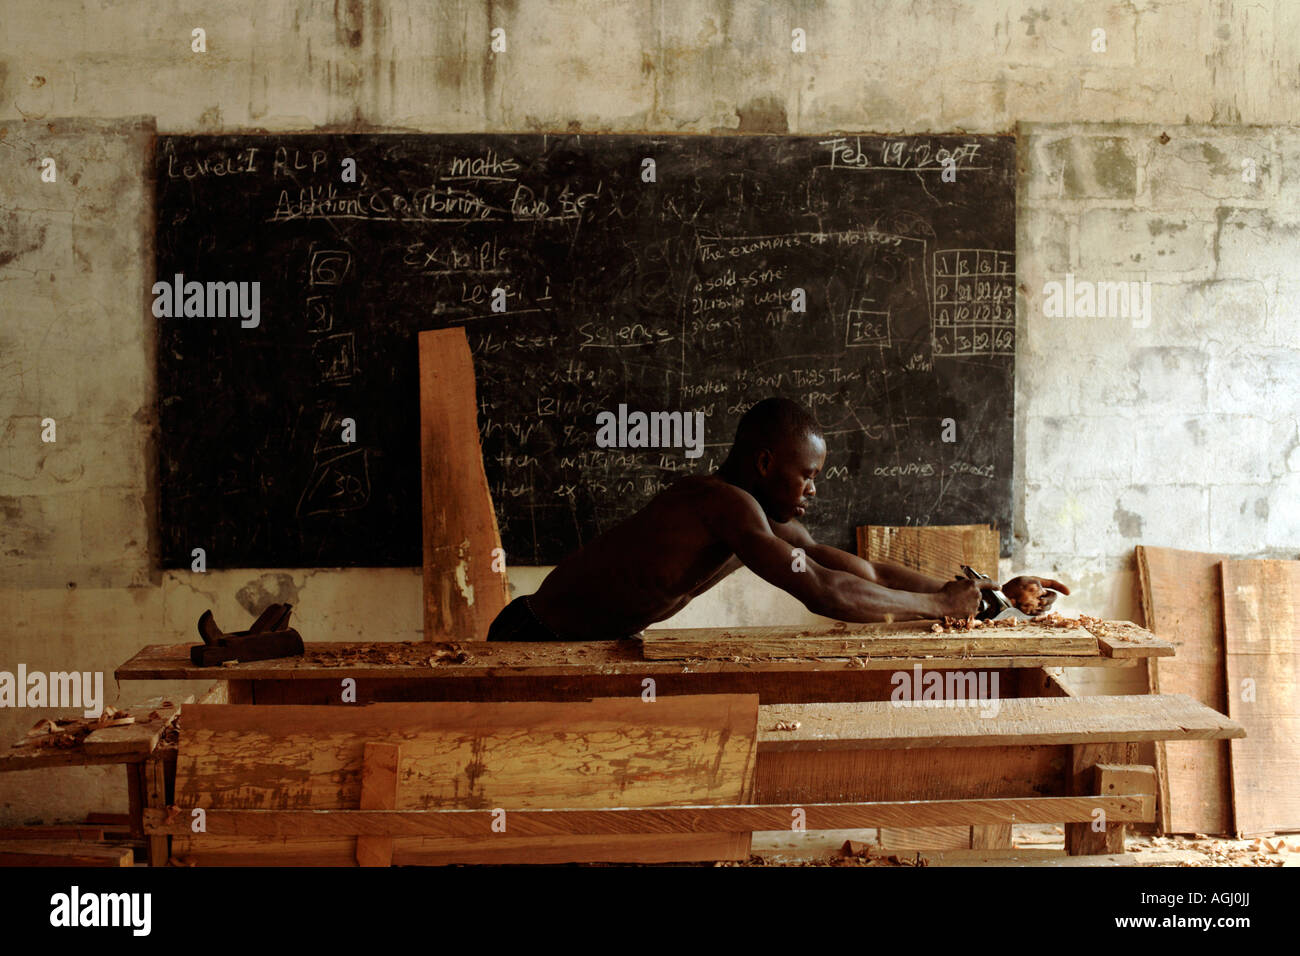 The rebuilding after the war of Zeah Town school which is supported by 'Save the Children' Zeah Town Liberia - Stock Image